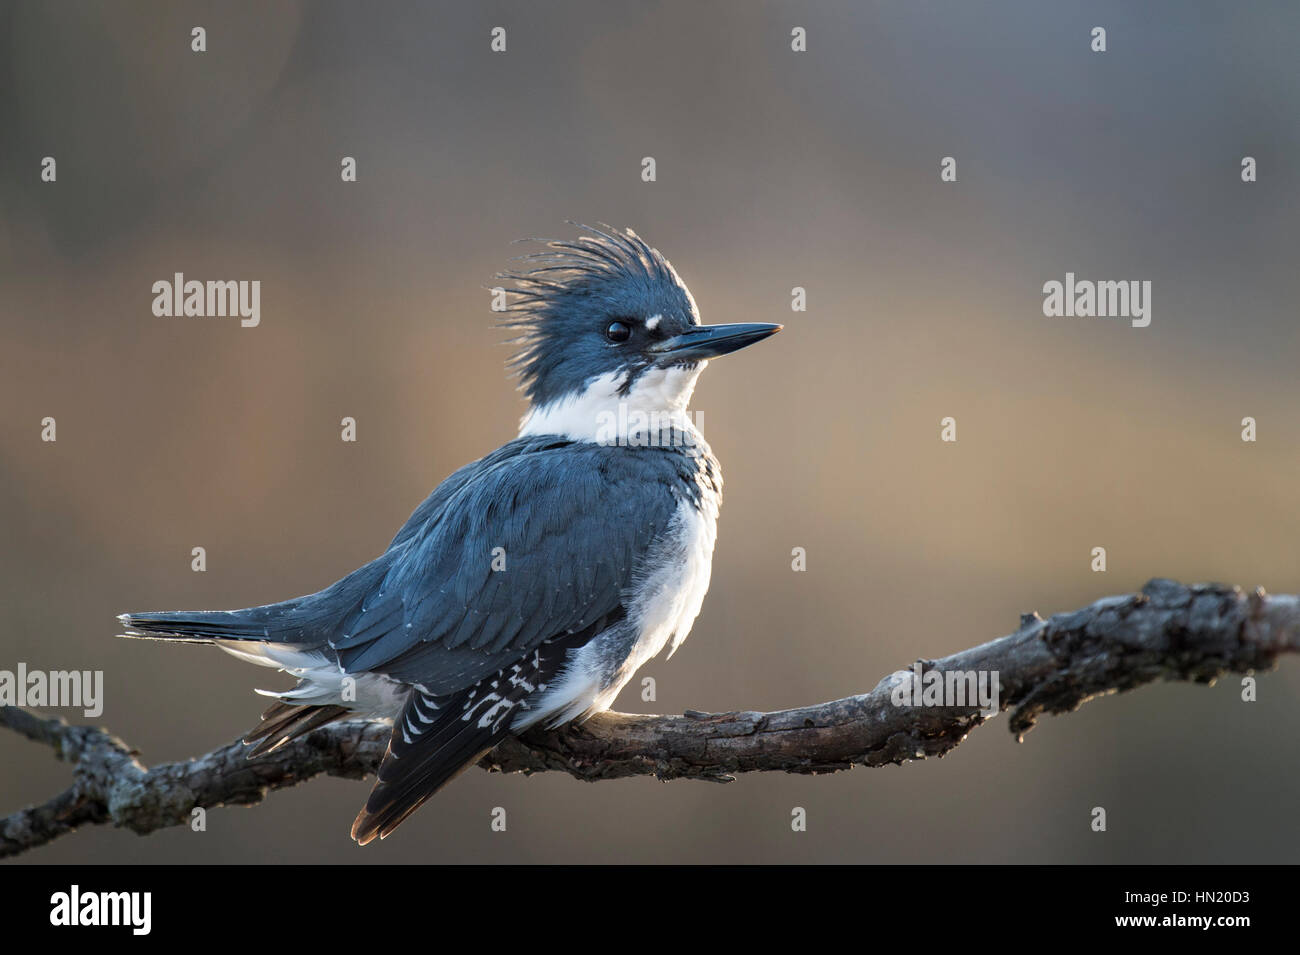 A male Belted Kingfisher perches on a branch with a proud pose as the late afternoon sun creates a soft glow around - Stock Image